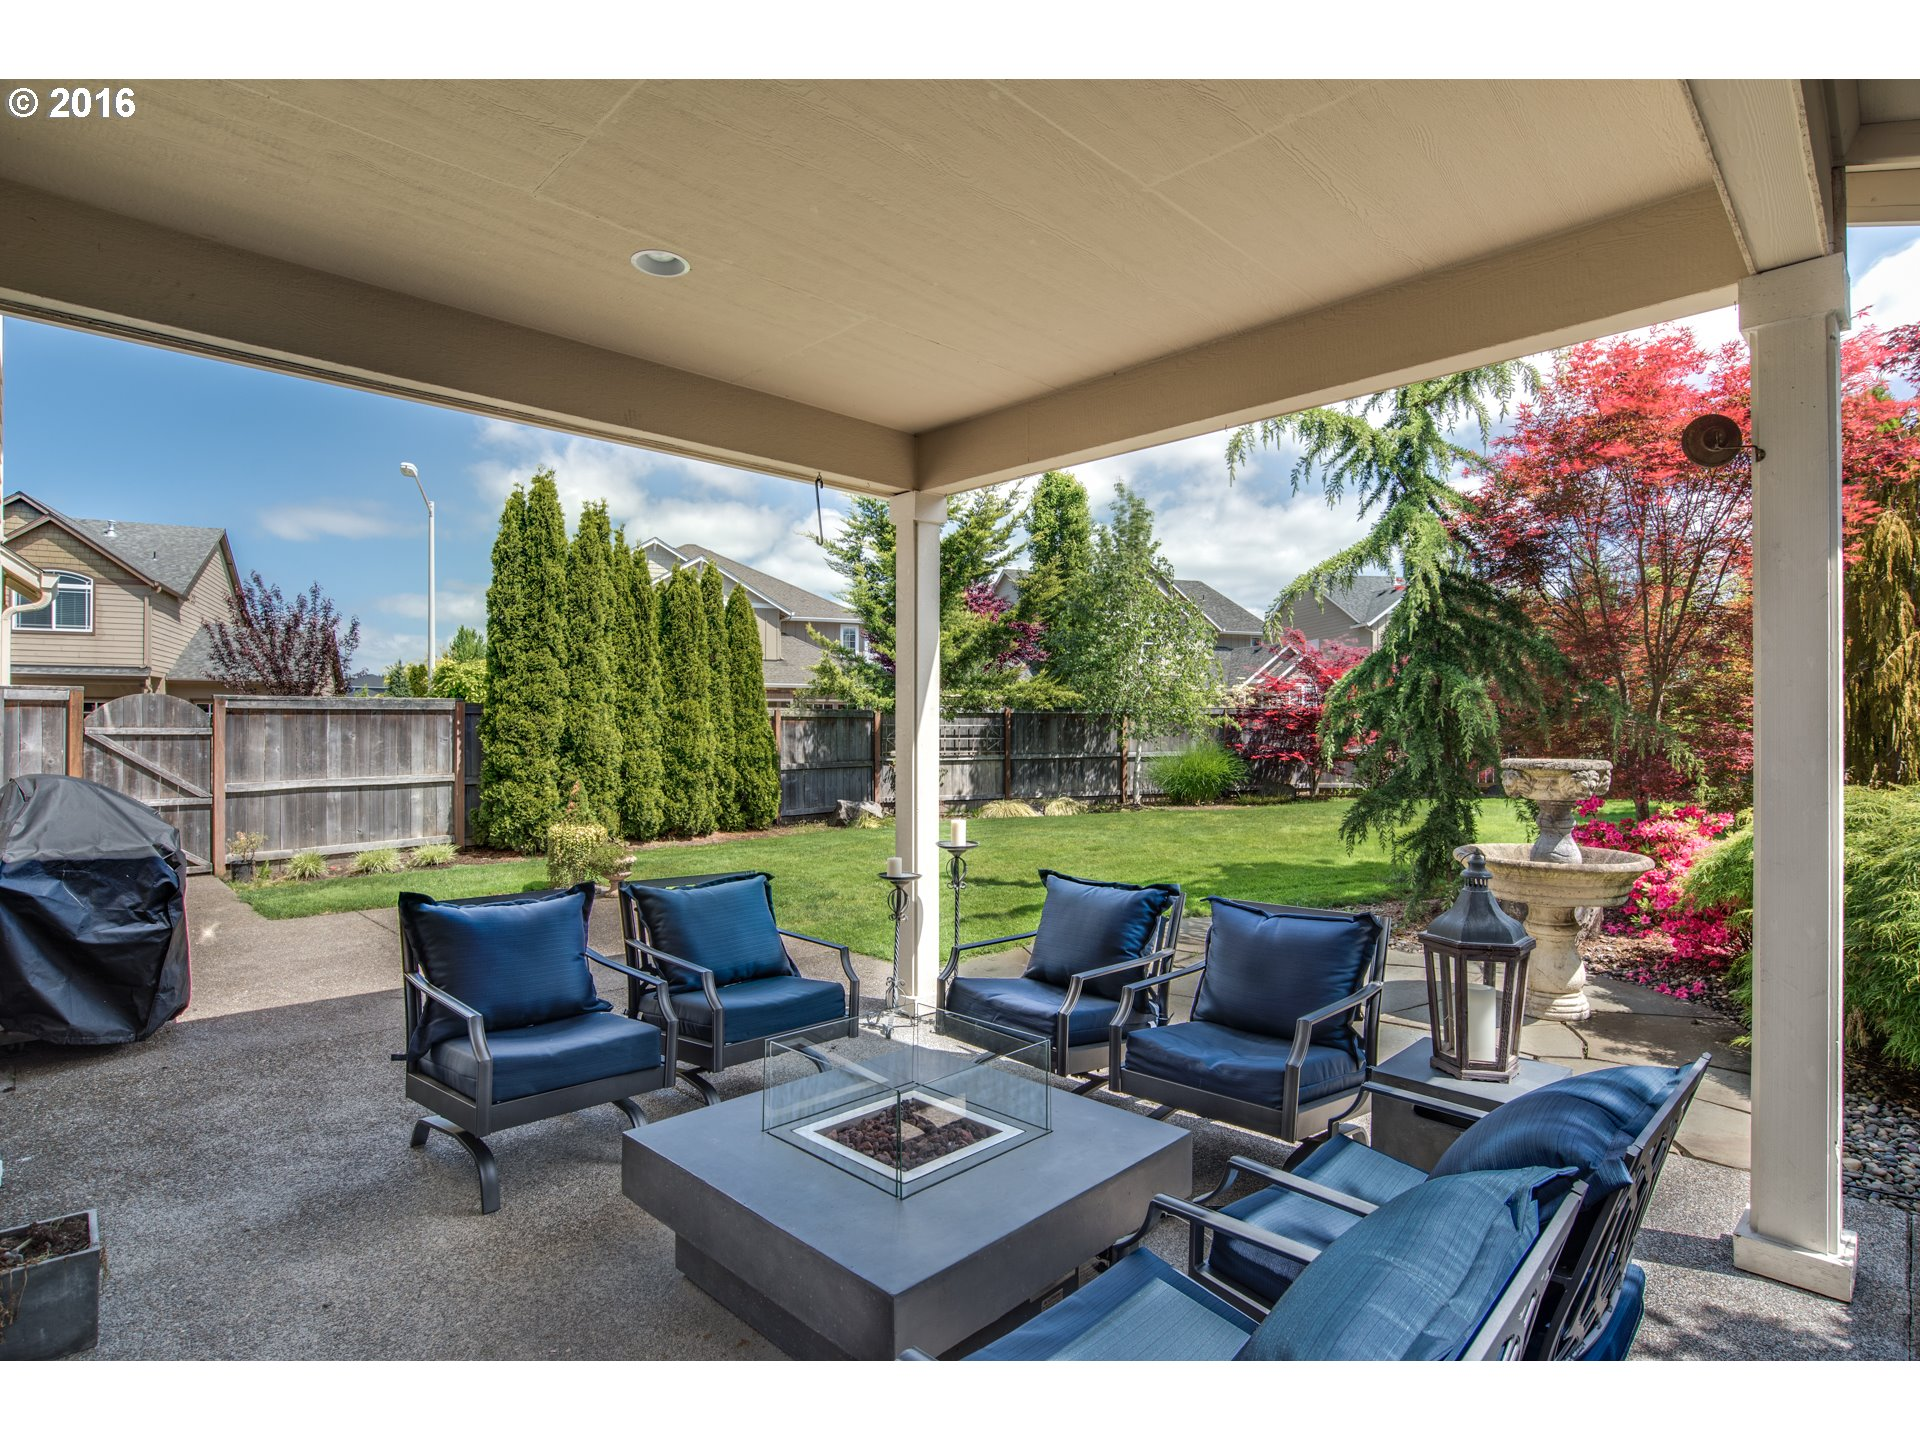 Photo of 14414 NW 25th Court, Vancouver, WA, 98685